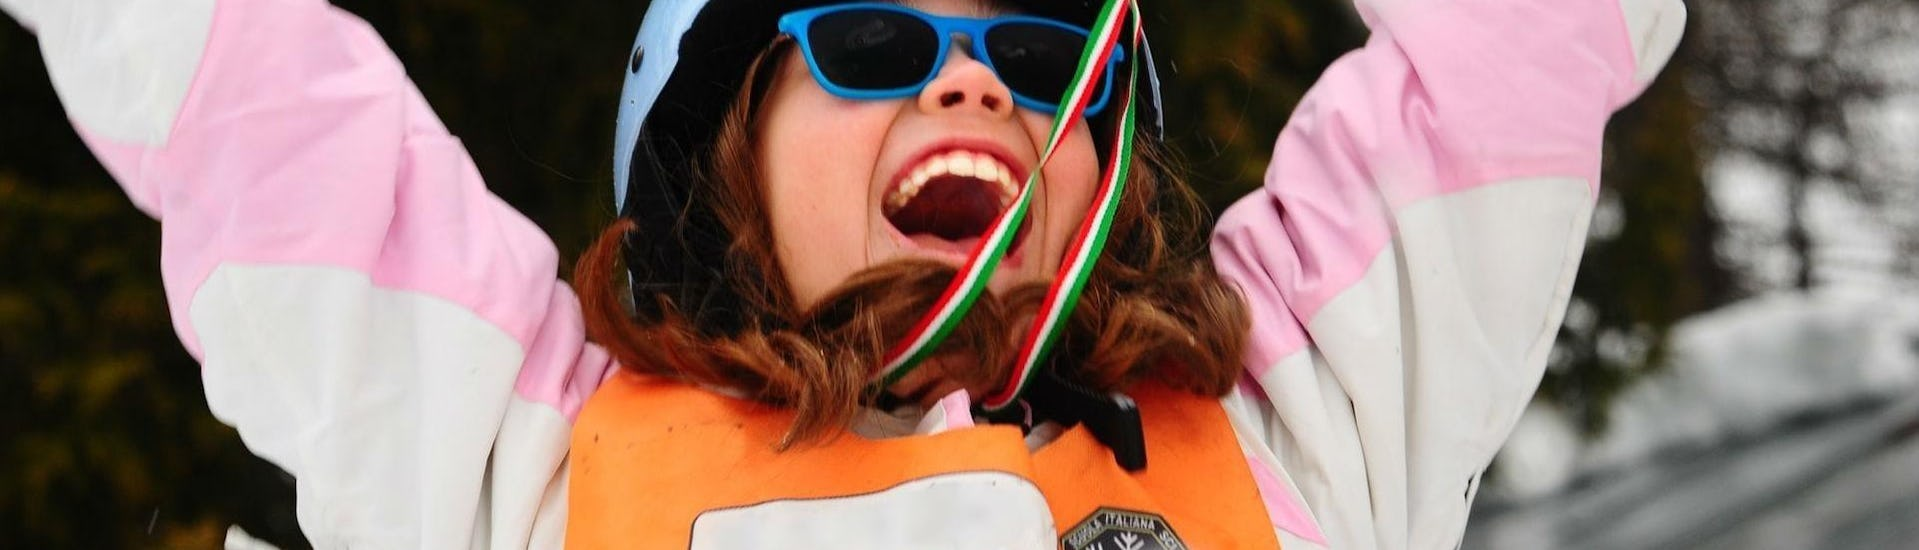 """Kids Ski Lessons """"Half Day"""" (3-4 years) - Beginner Ski School AEvolution Folgarida are at the end, a little girl has been awarded and celebrates on the podium."""